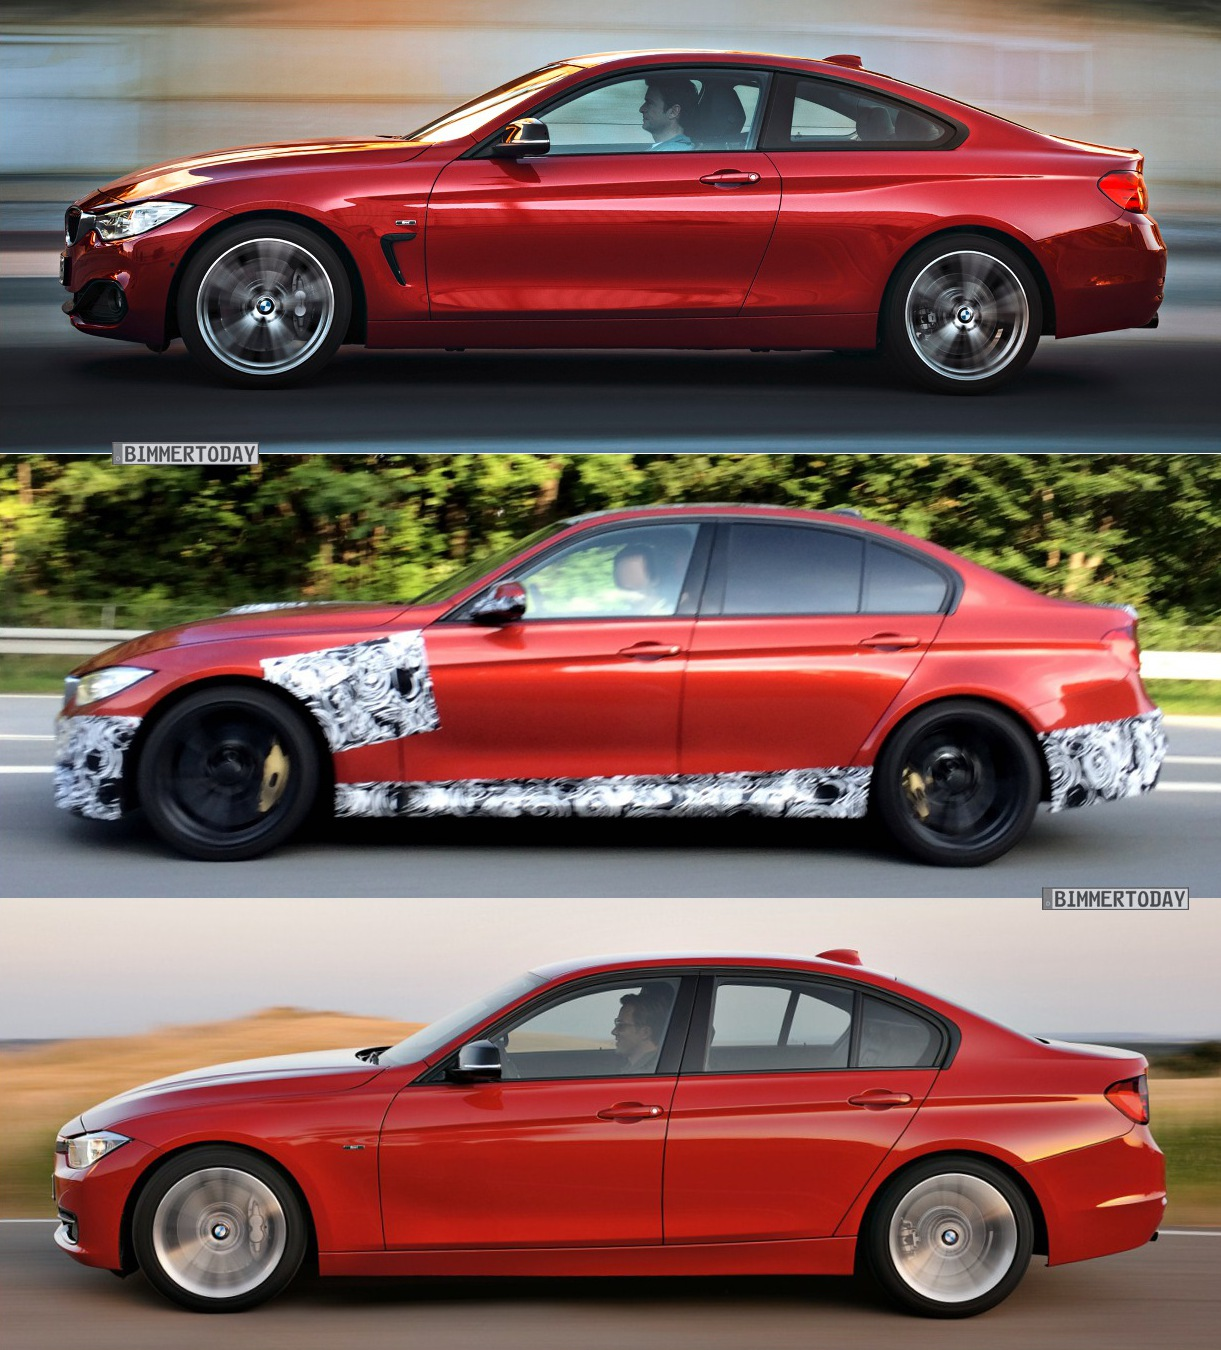 bmw m3 2014 f80 bekommt front des m4 f82 mit air breather. Black Bedroom Furniture Sets. Home Design Ideas